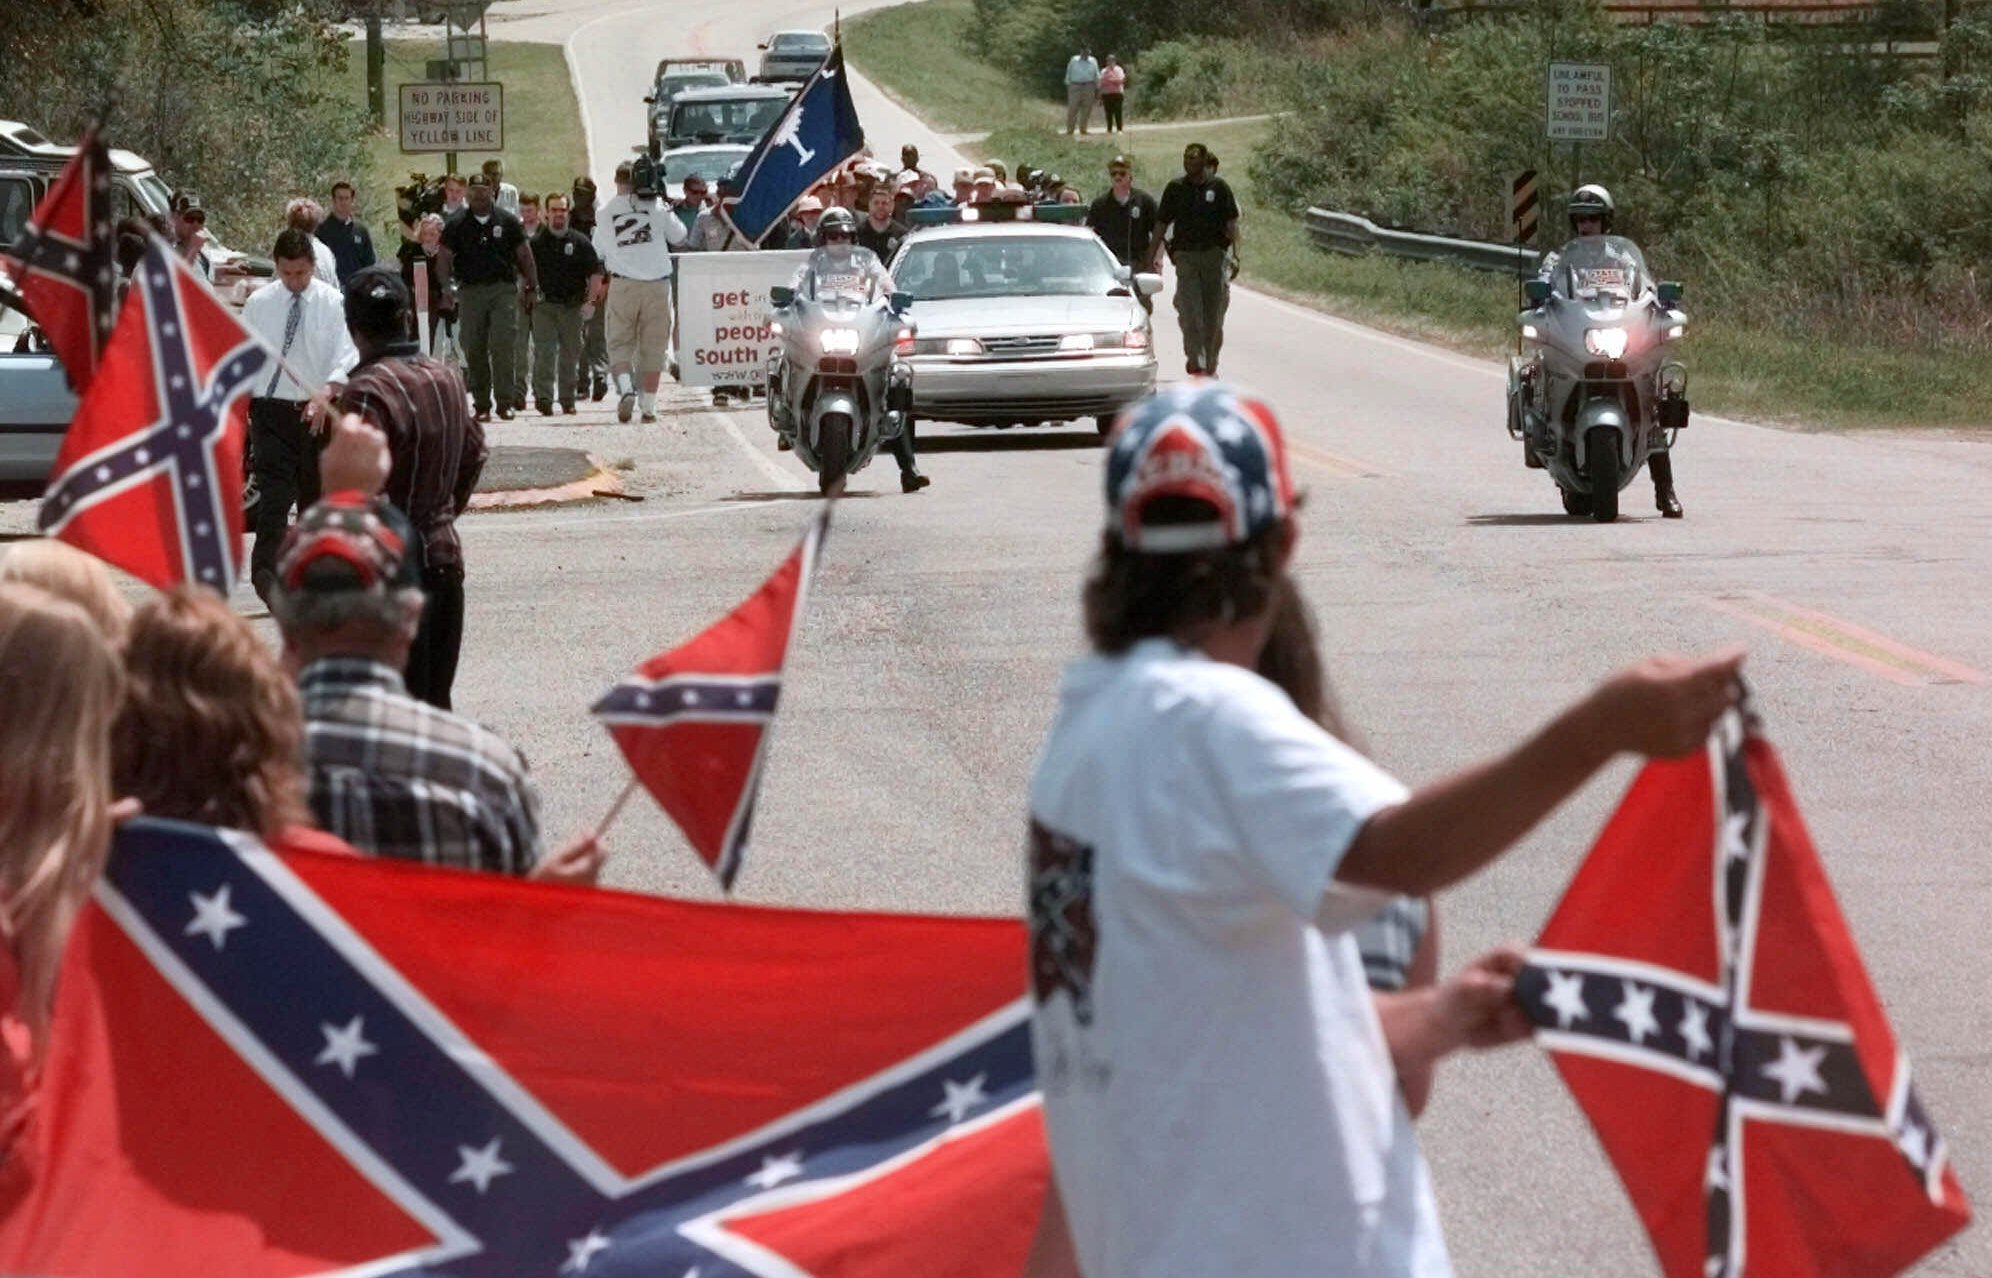 new york wal mart says removing confederate flag items from stores